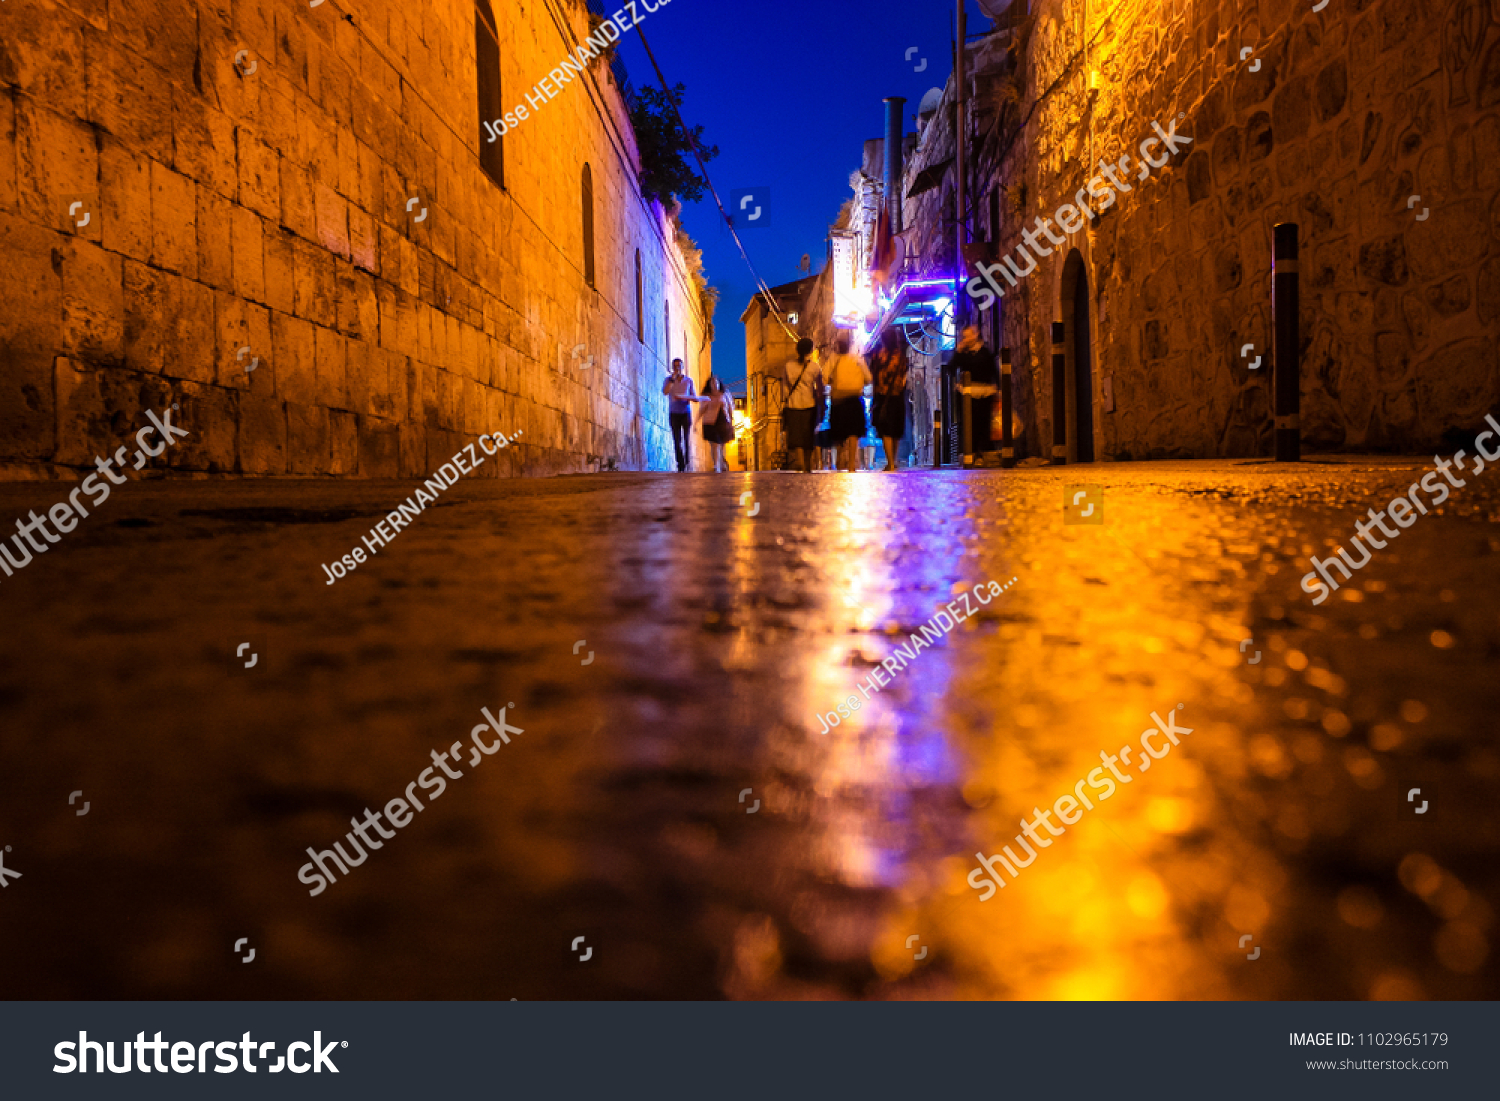 Jerusalem Israel May 31, 2018 View of the street of the old city of Jerusalem from the ground in the night